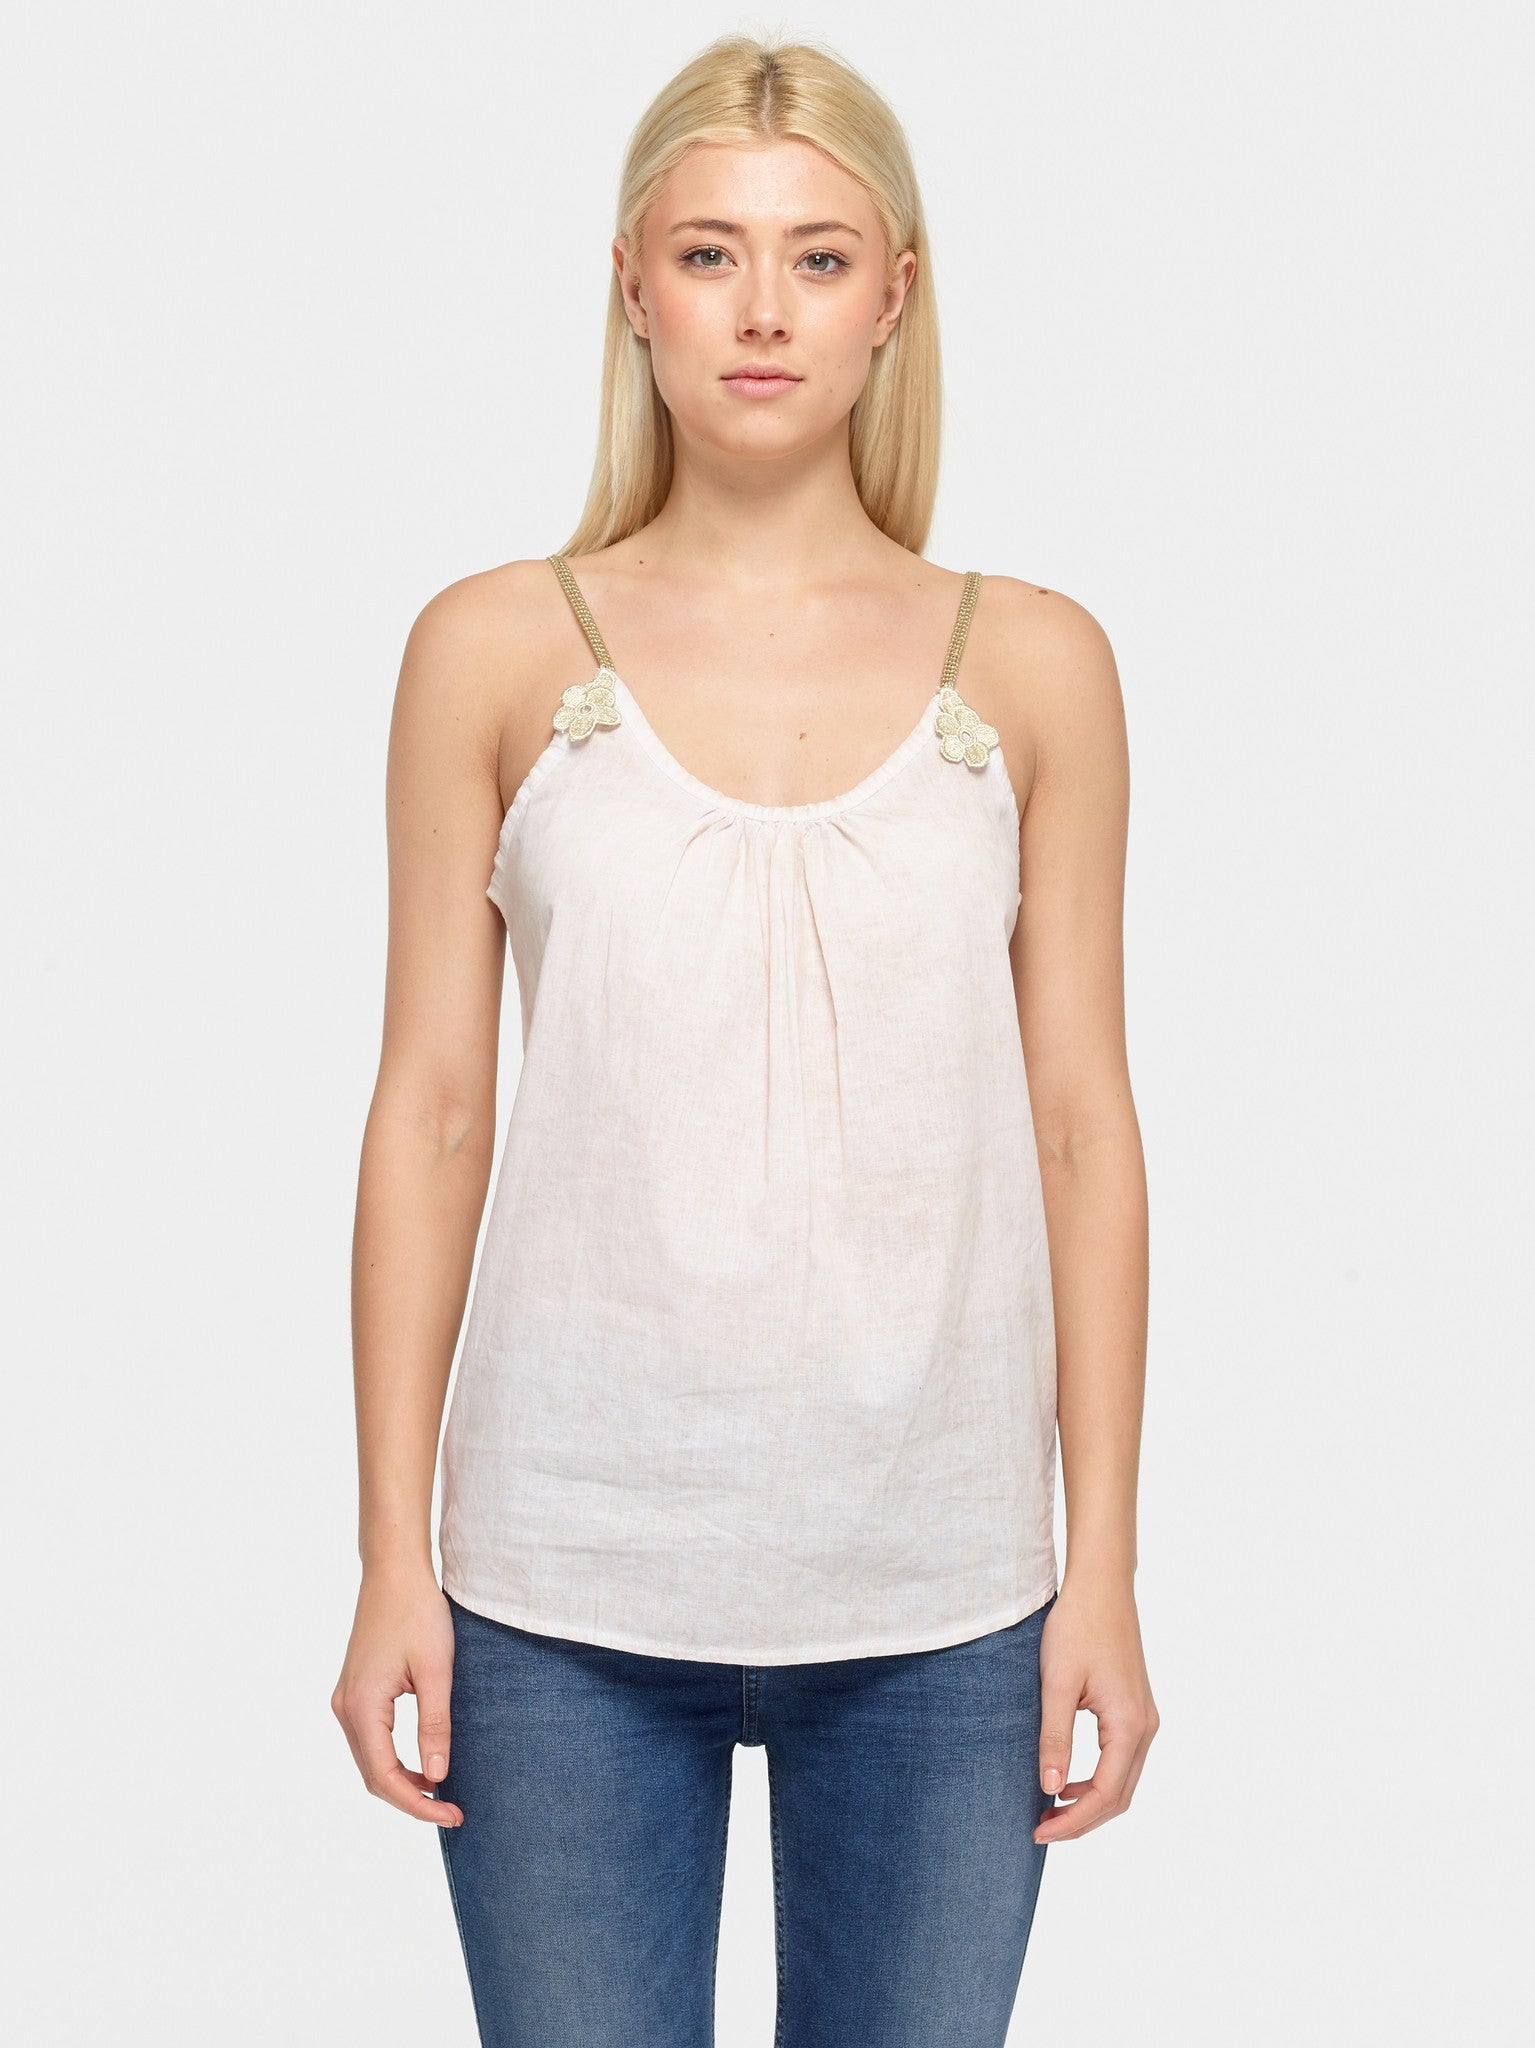 Linen Daisy Flower Top